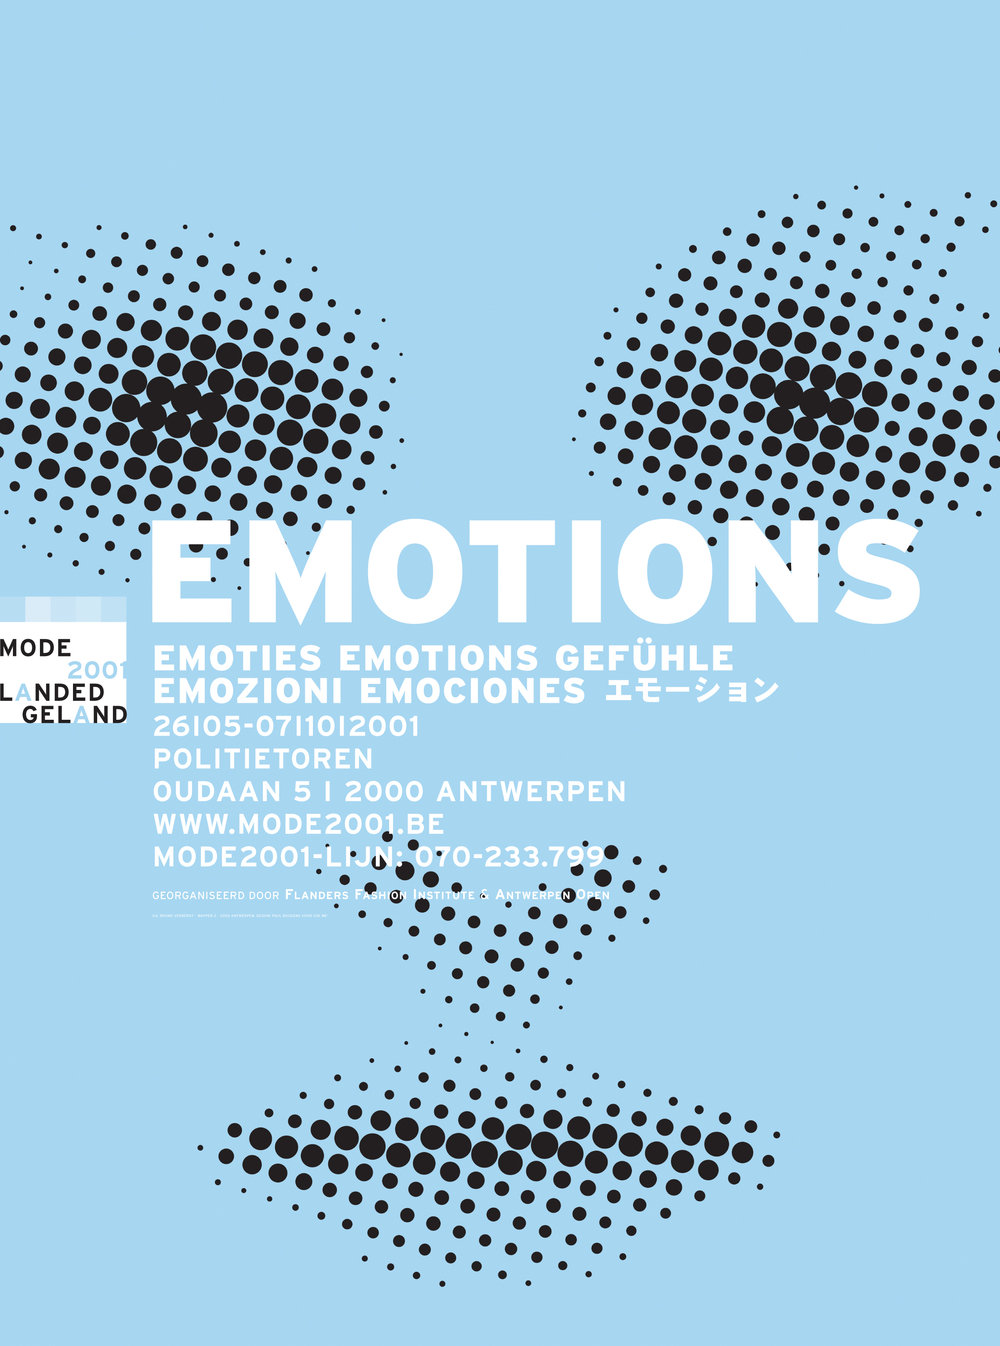 2001 Mode 2001 Emotions Poster.jpg